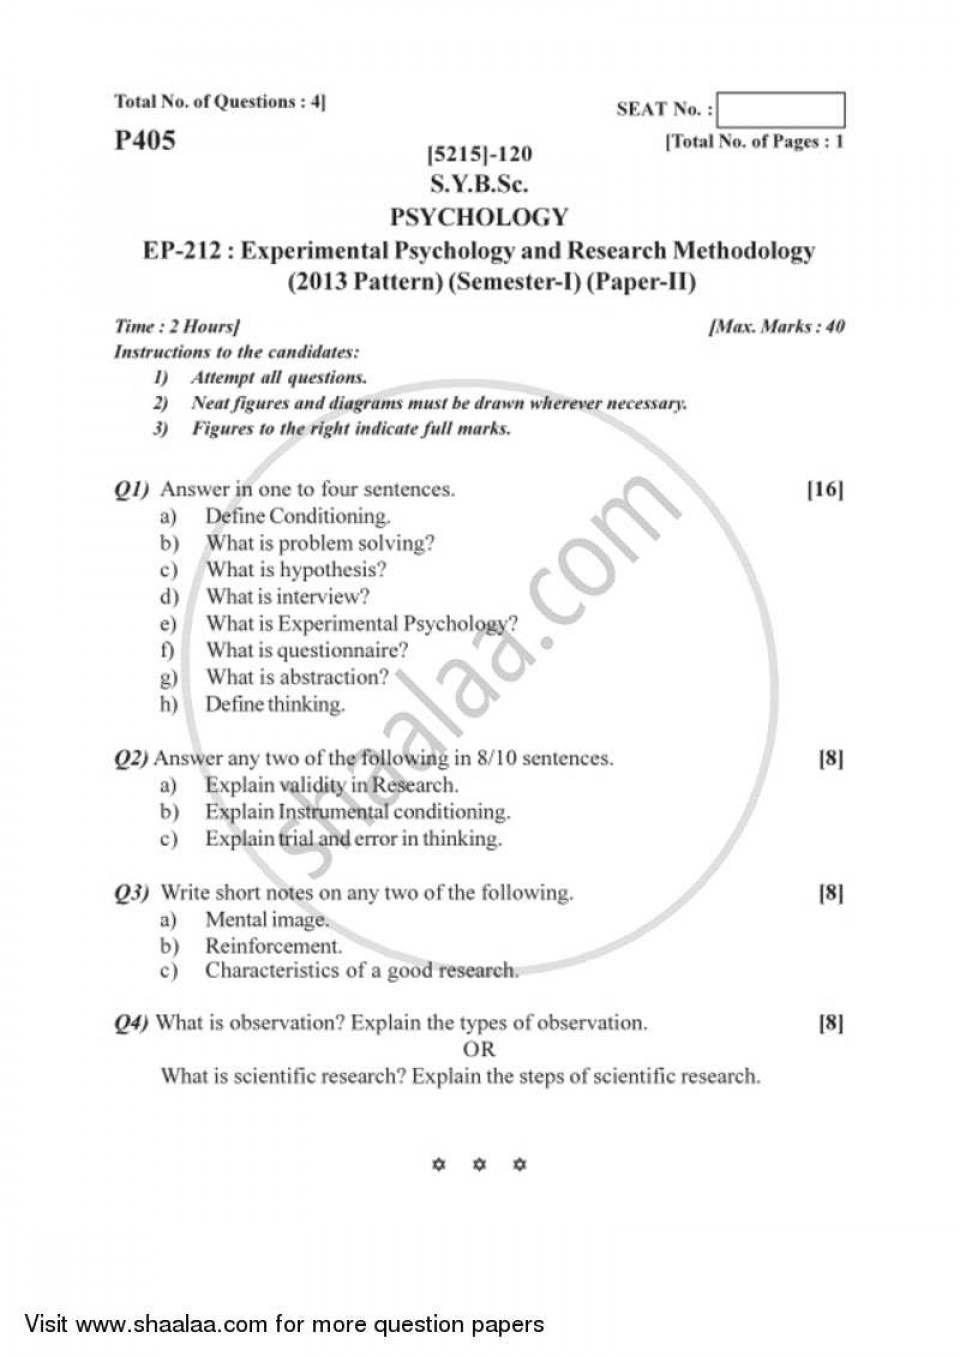 001 University Of Pune Bachelor Bsc Experimental Psychology Research Methodology Semester Sybsc Pattern 20a139127c9aa4d488dbfc2180e67df98s Unforgettable Papers 2017 960